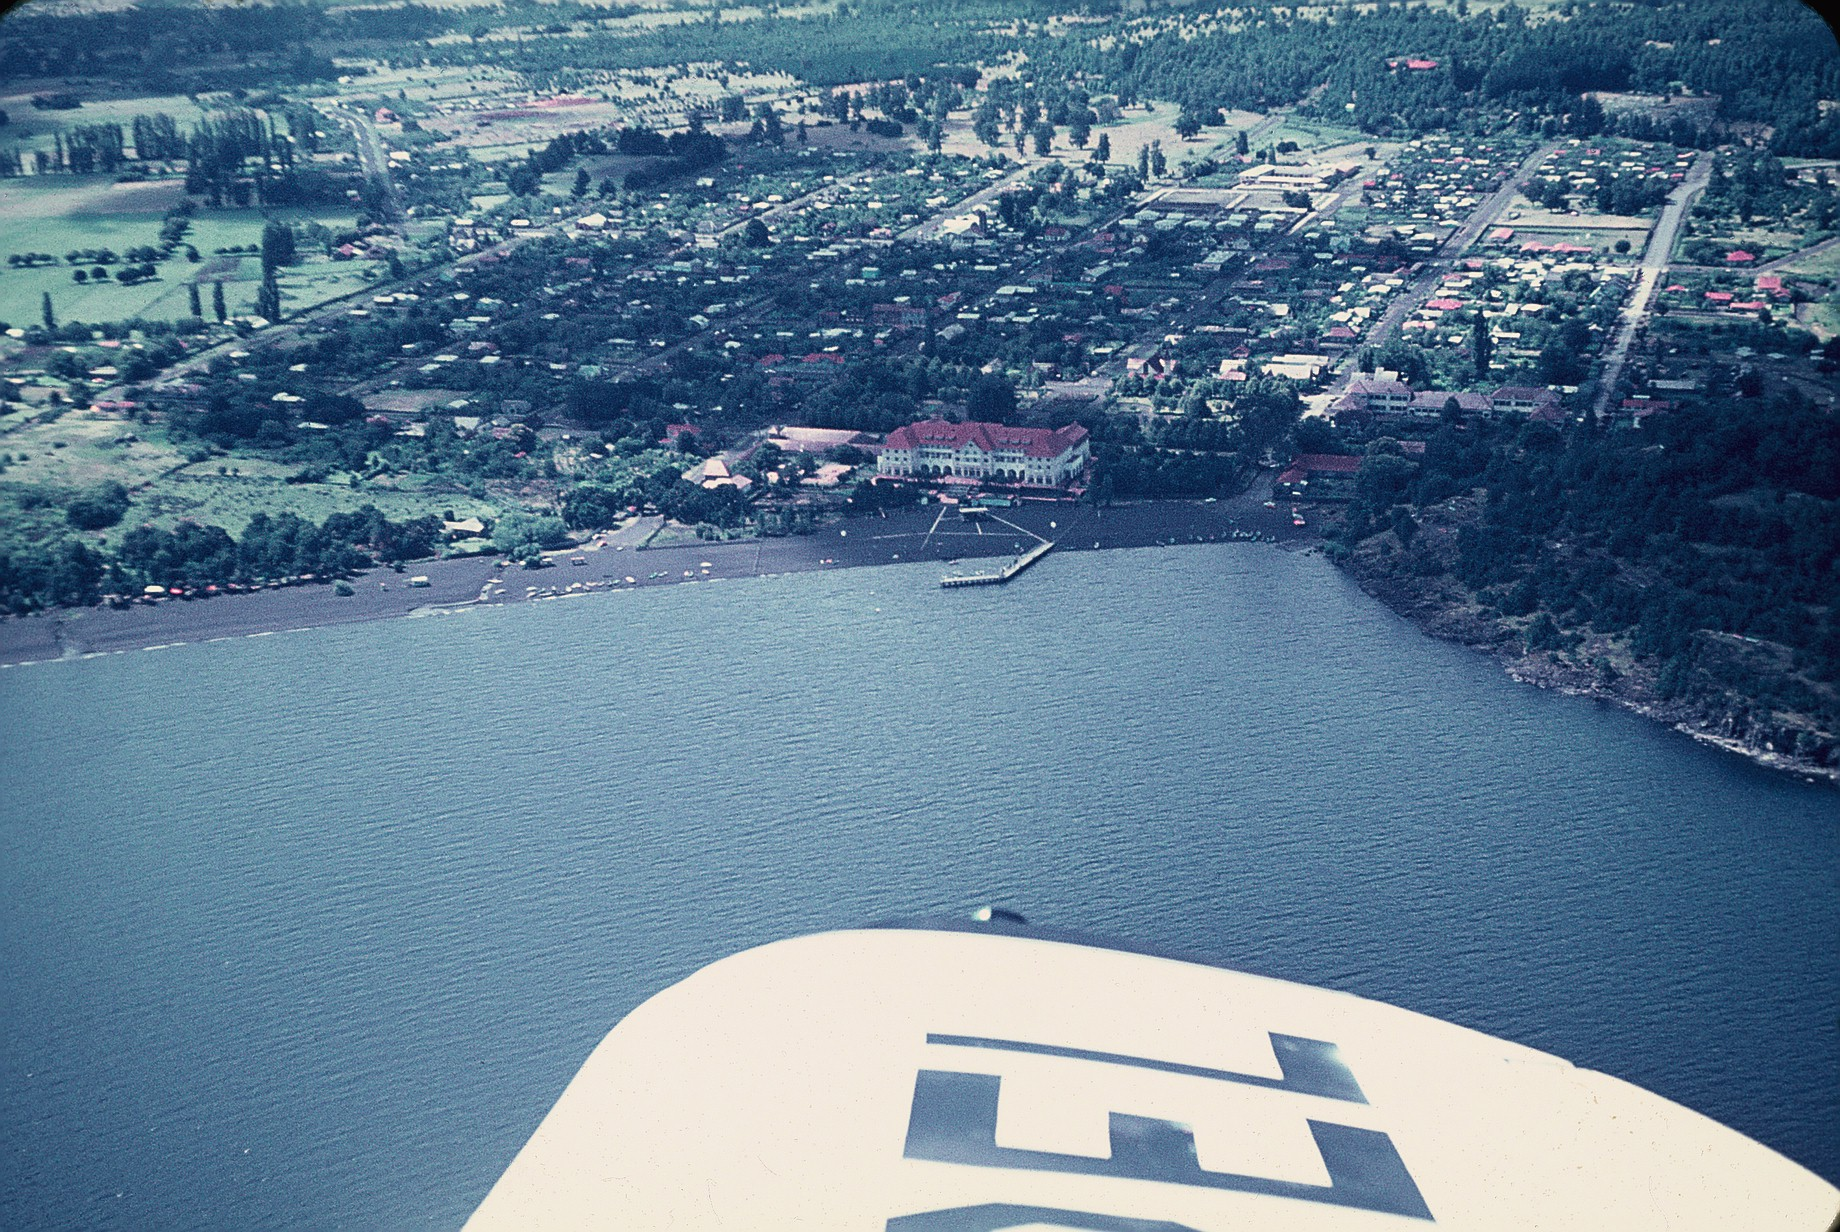 Enterreno - Fotos históricas de chile - fotos antiguas de Chile - Pucon desde el aire 1970